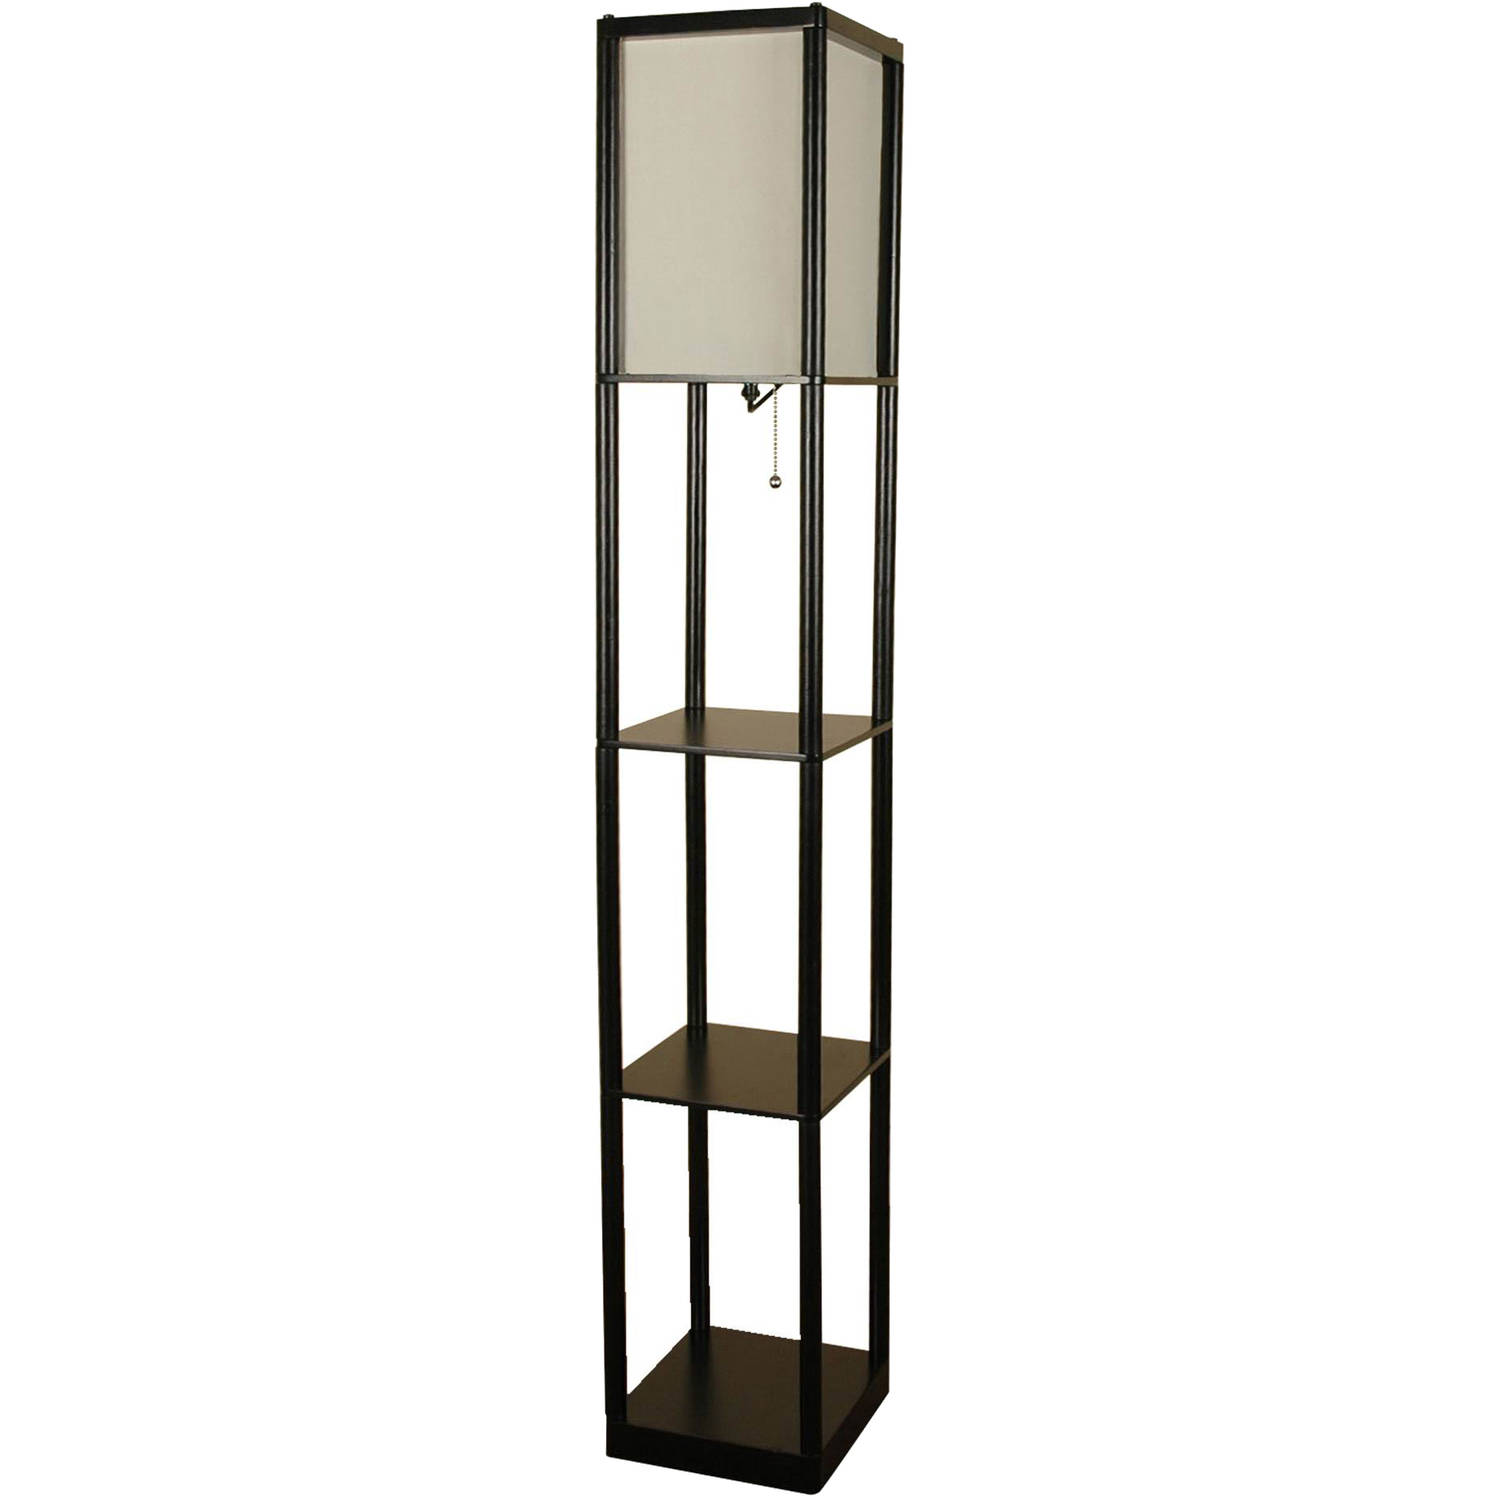 Mainstays Black Shelf Floor Lamp with White Shade On/Off CFL Bulb Included